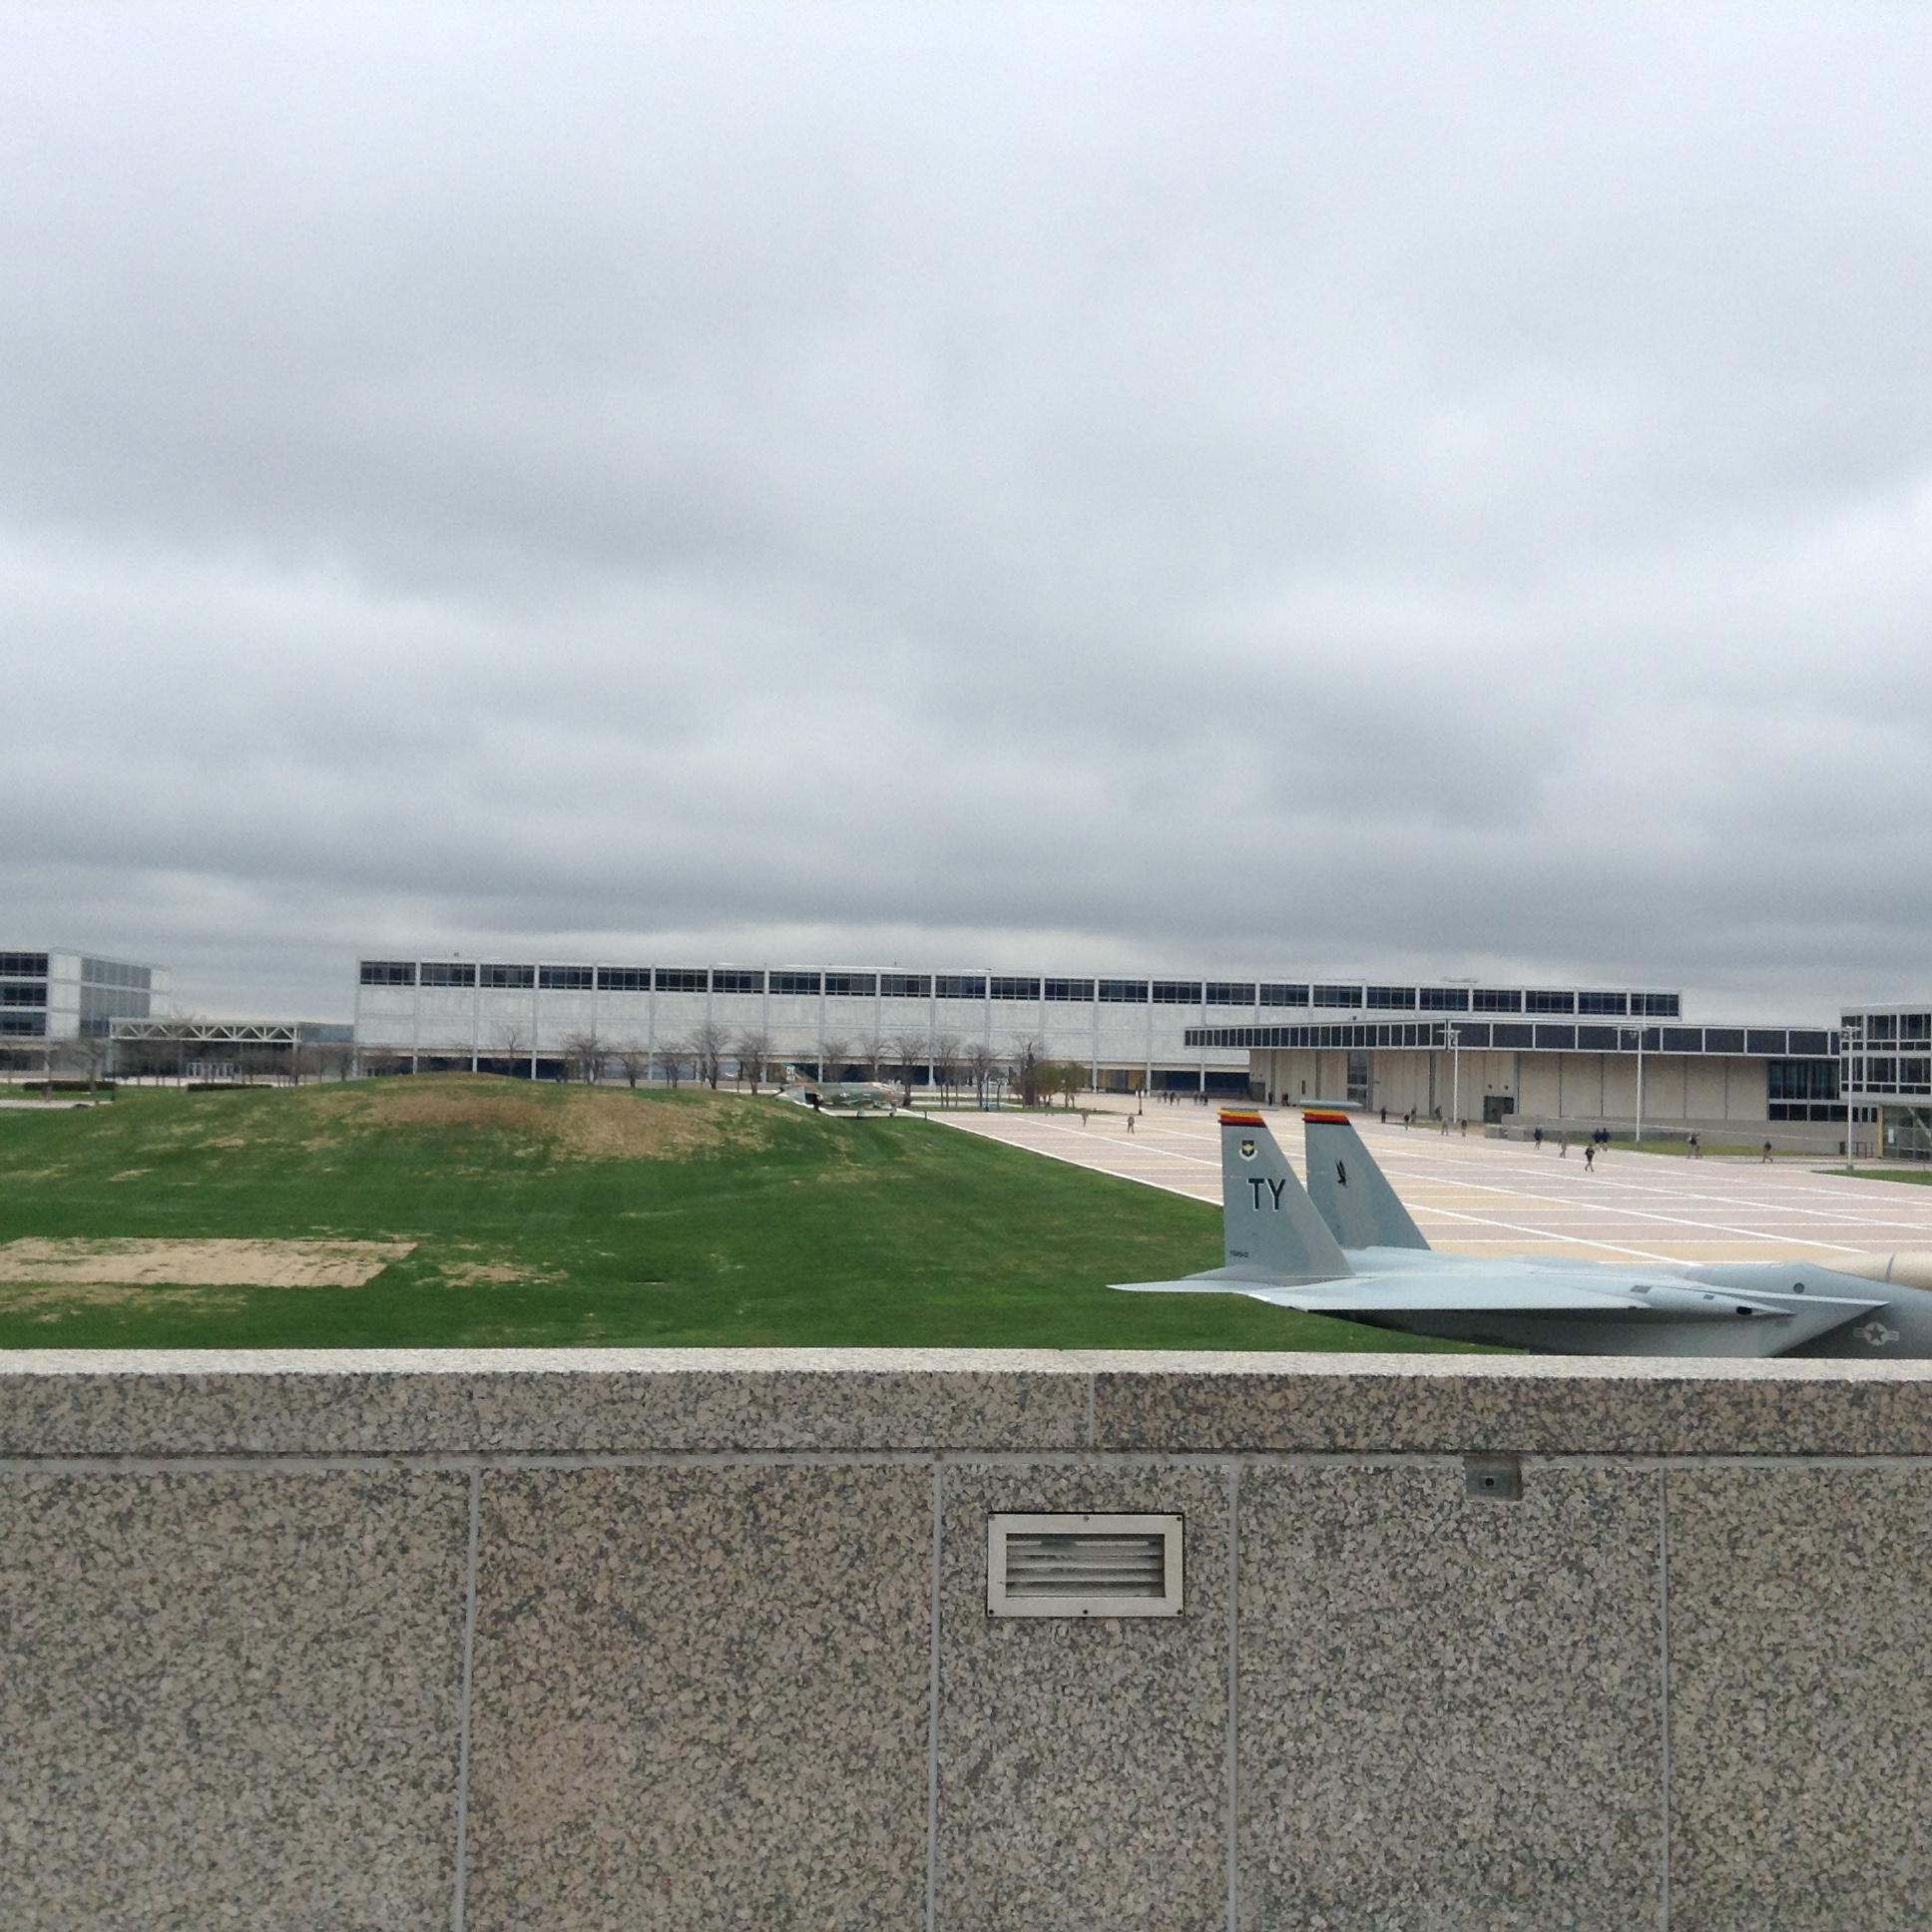 AIR FORCE ACADEMY CLASSROOMS